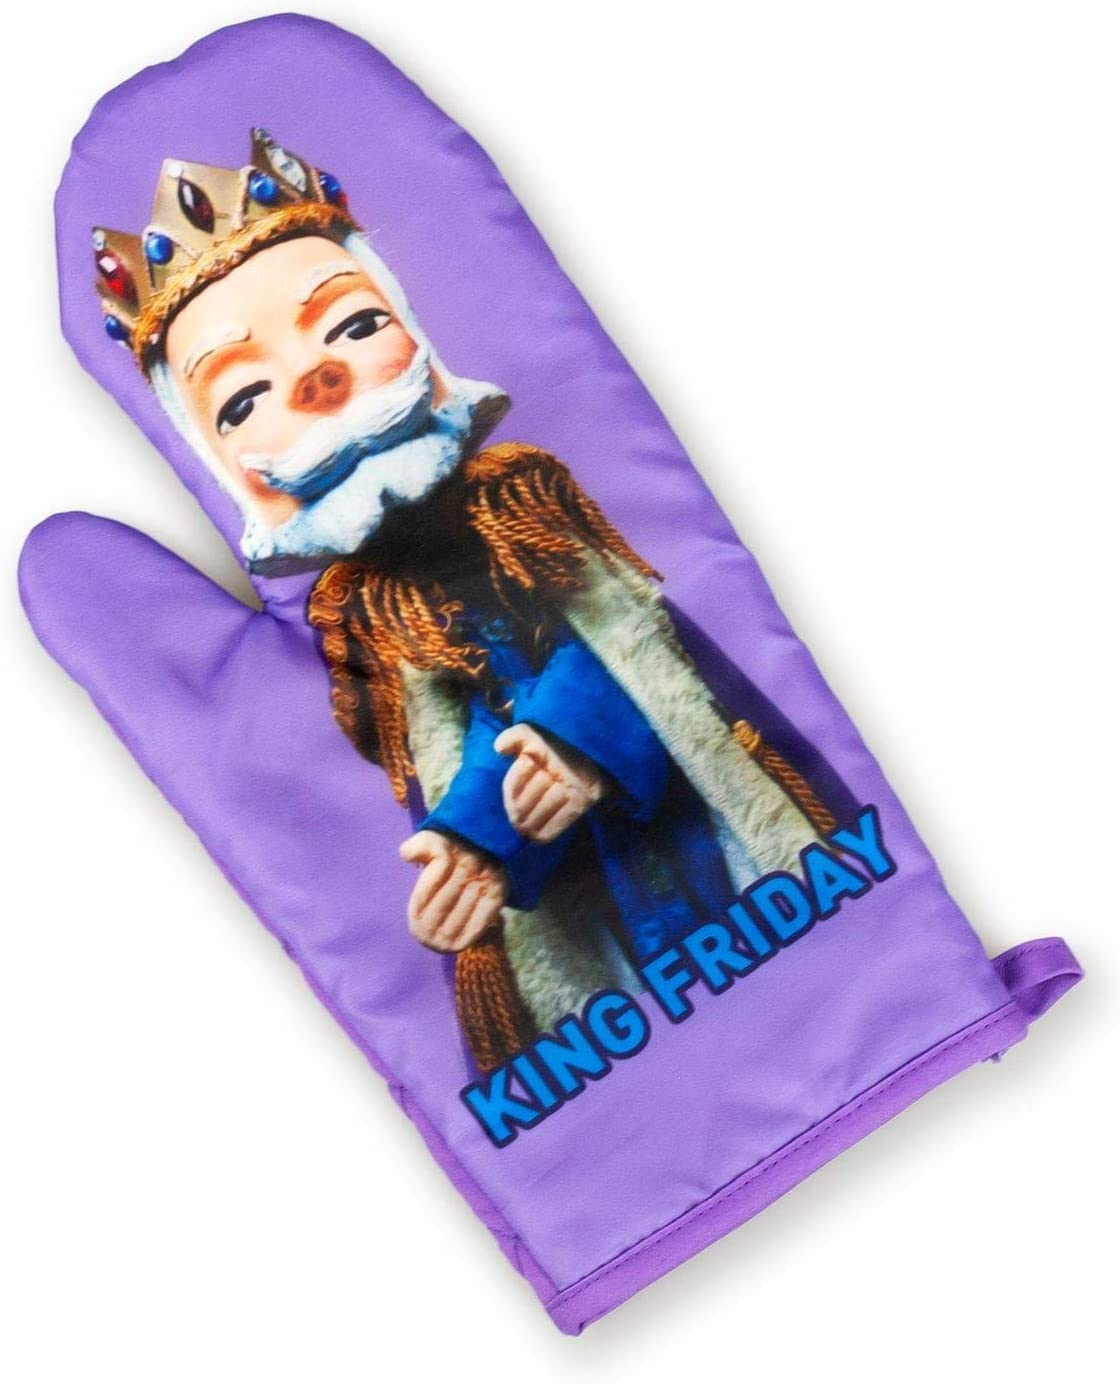 Amazon Com Mister Rogers Neighborhood King Friday Puppet Oven Mitt Tv Show Merchandise Home Kitchen